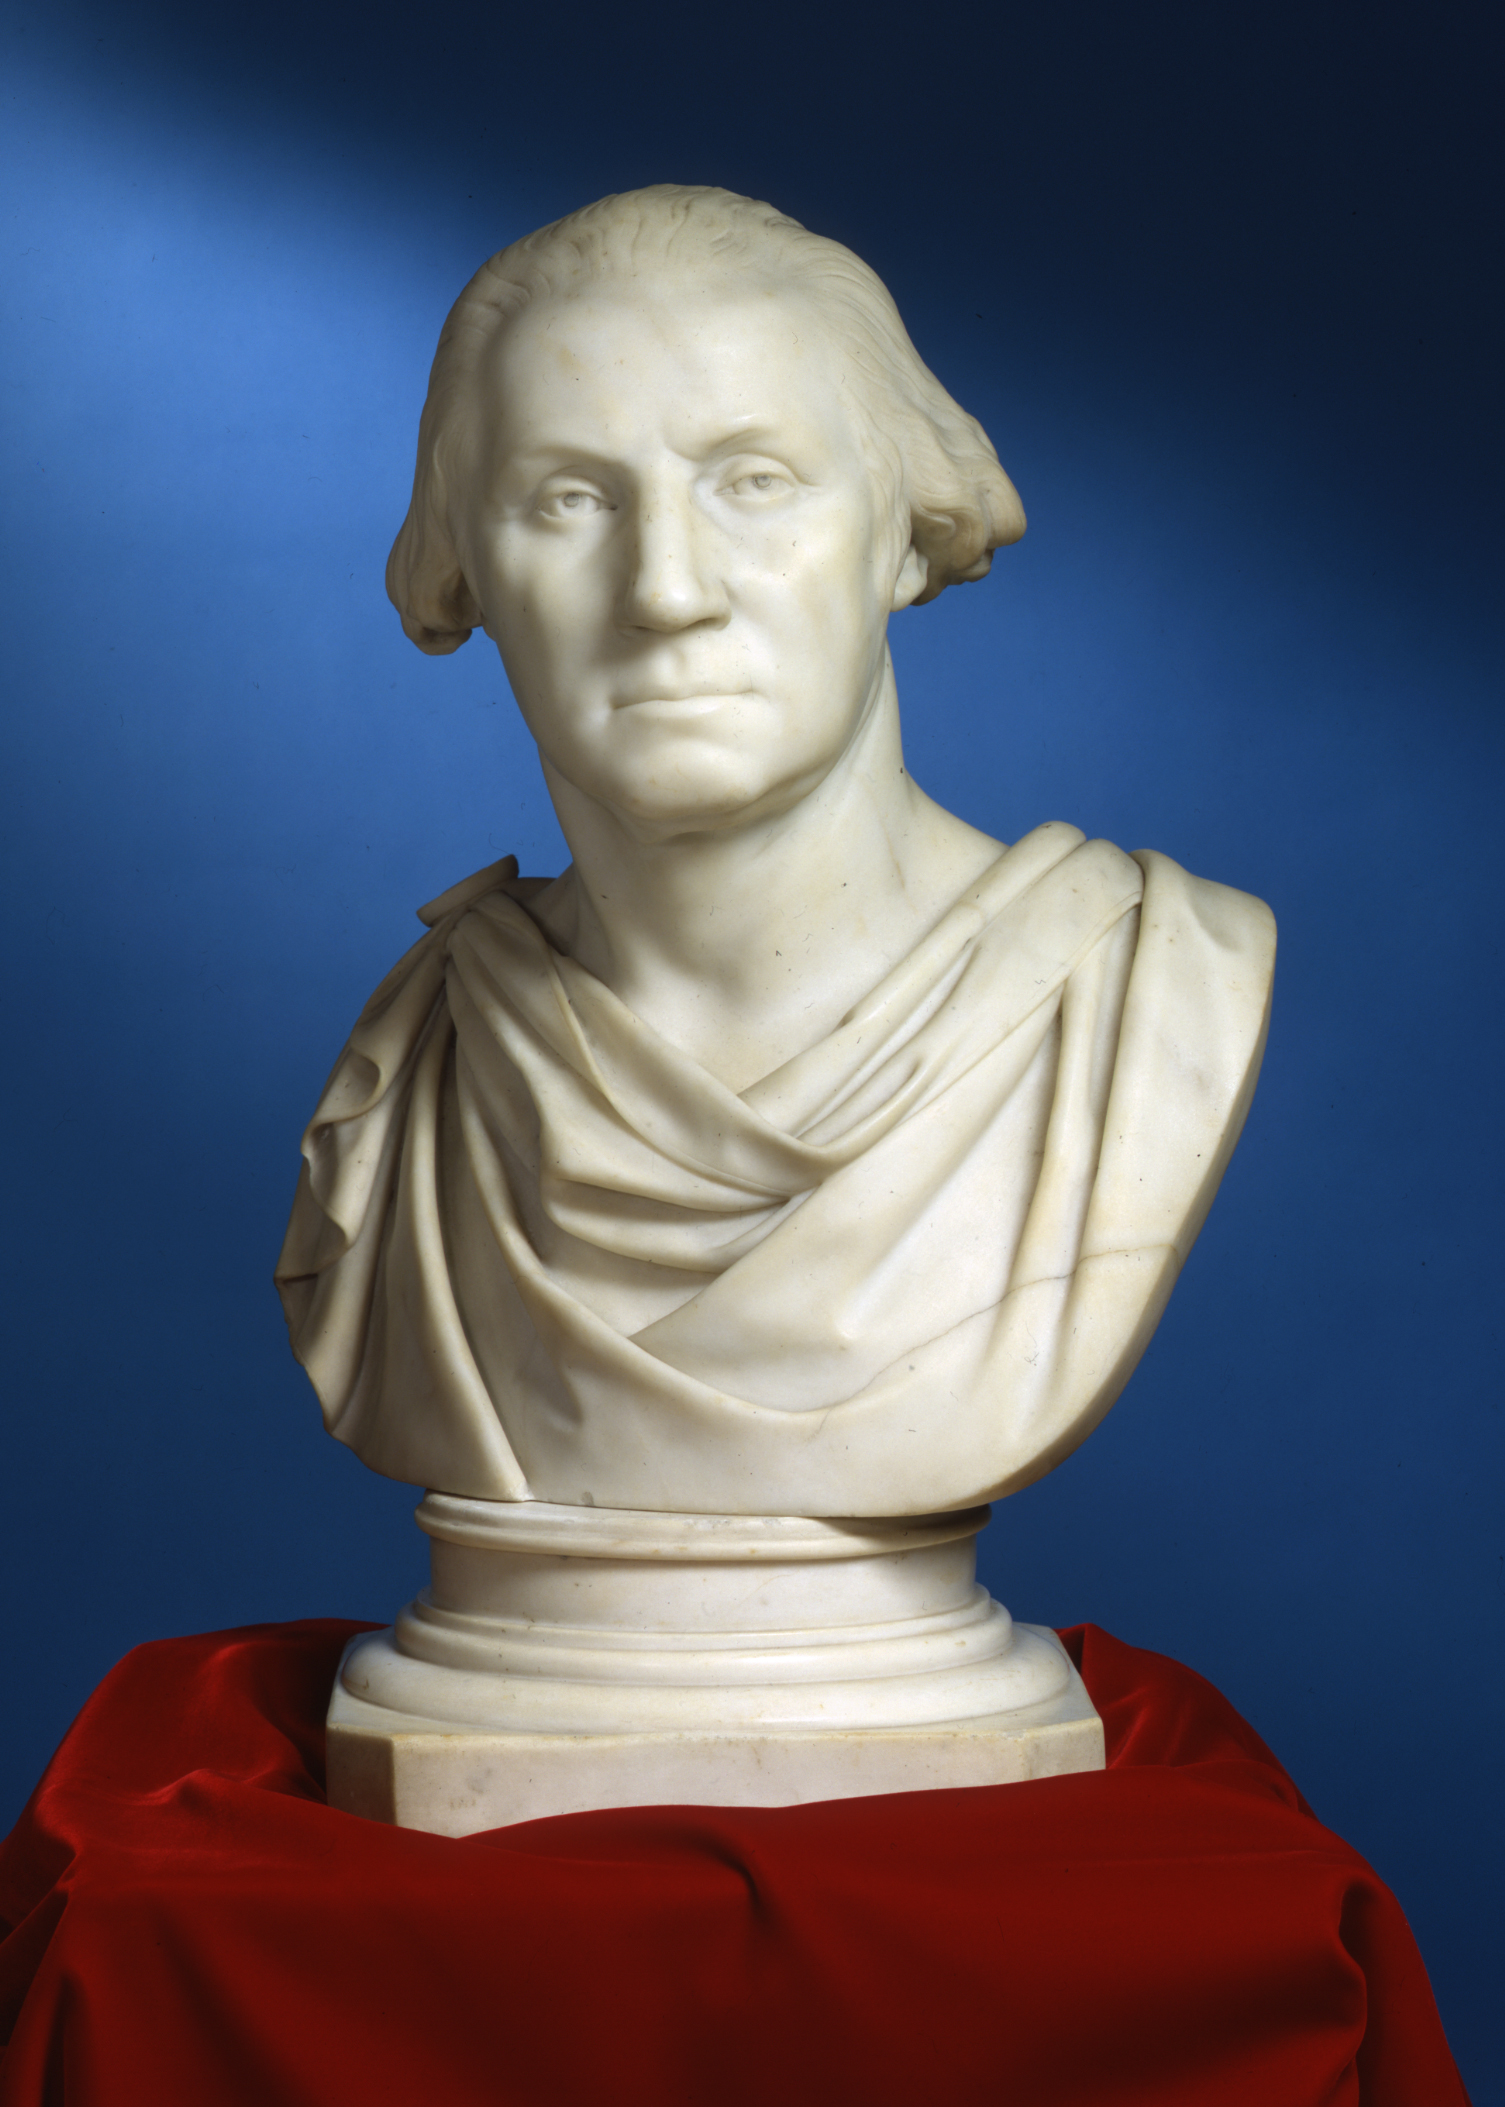 George Washington, Attributed to Thomas Crawford, sculptor; after Jean-Antoine Houdon, artist, Mid-19th century